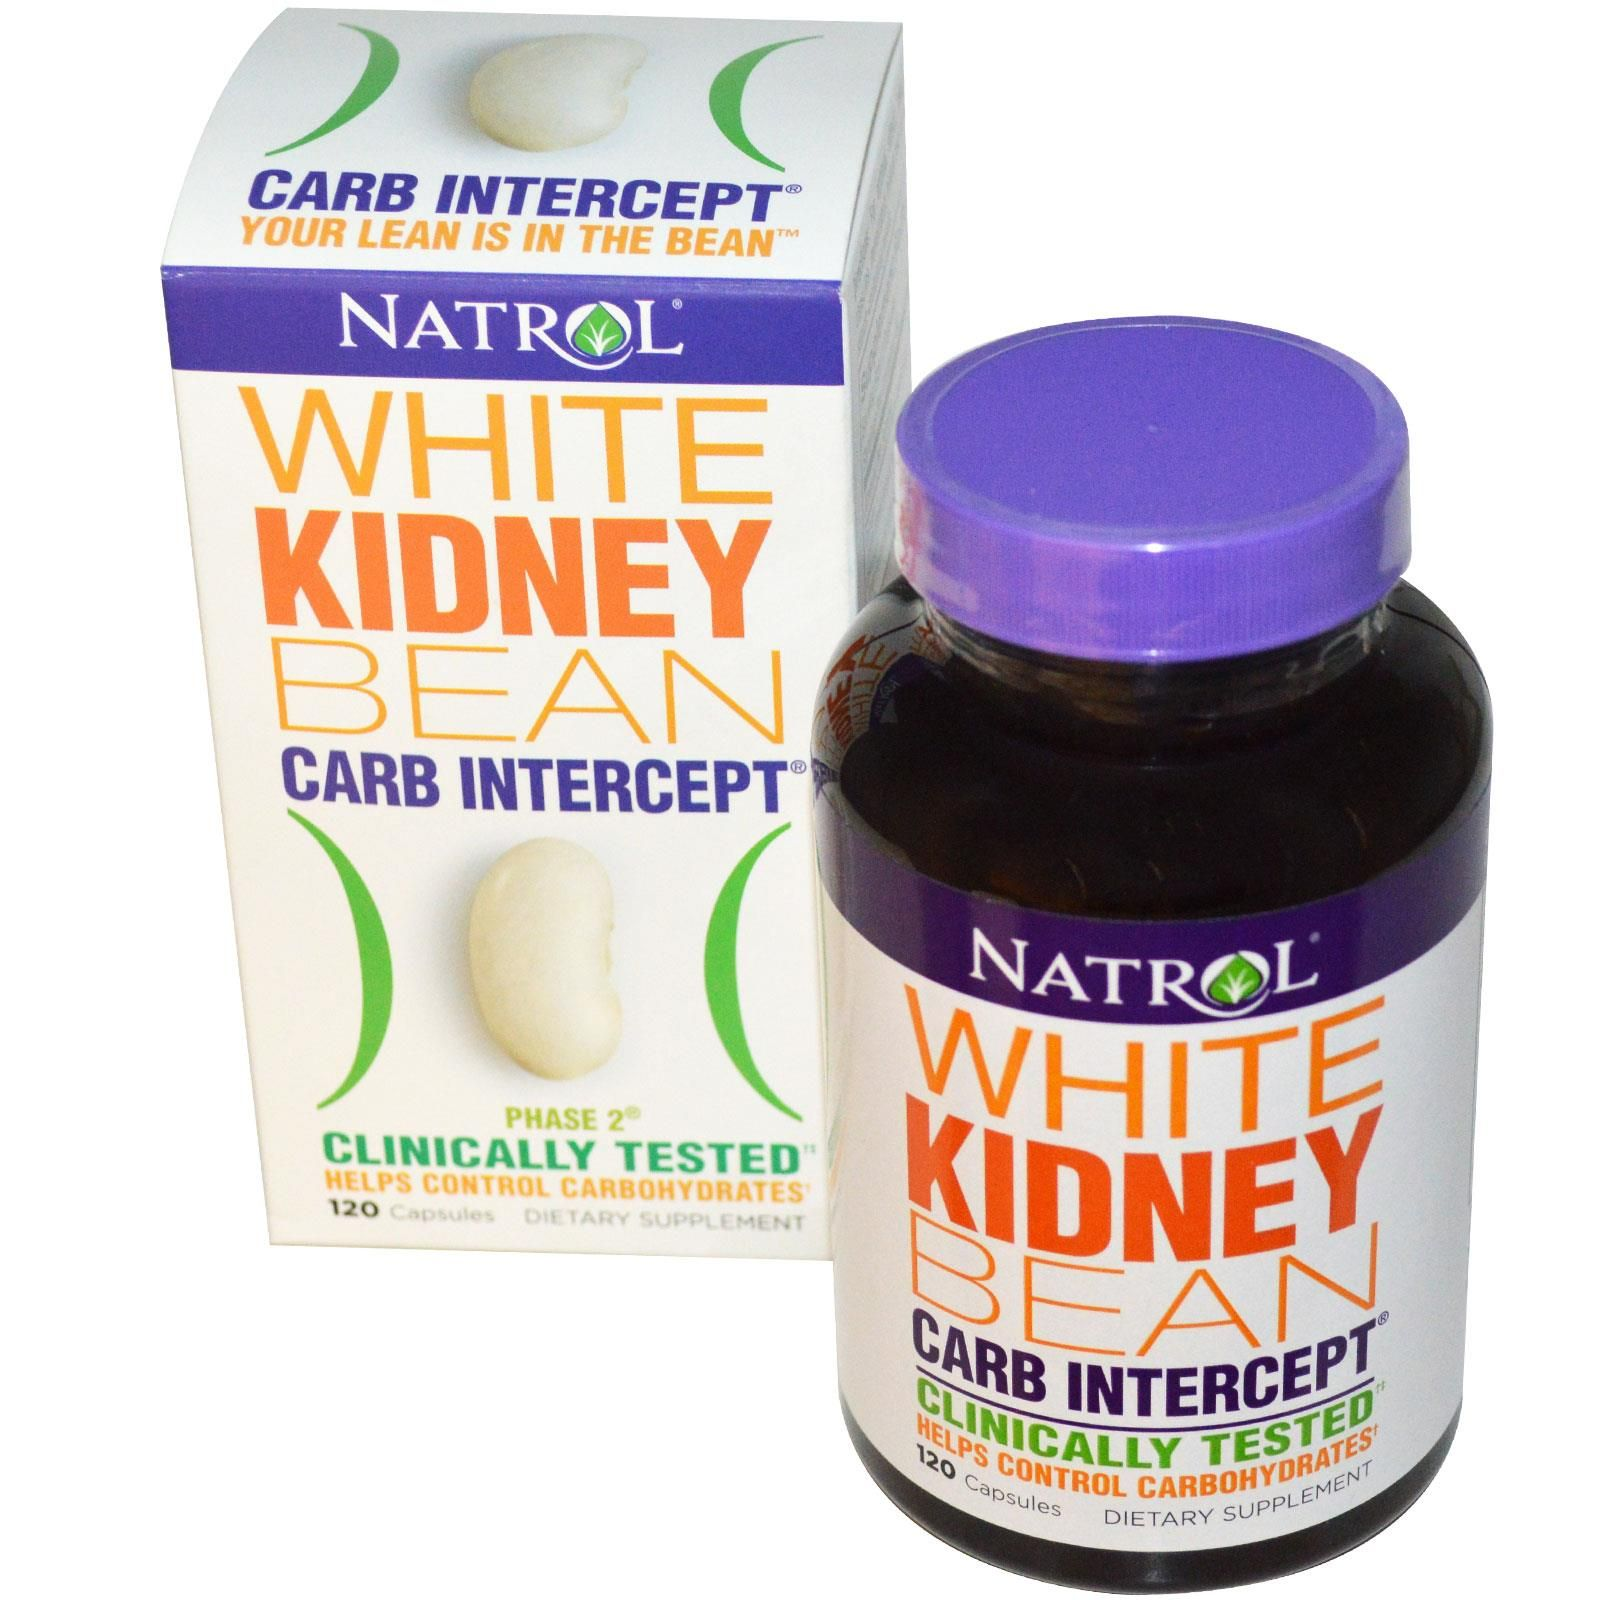 Natrol, Carb Intercept, Phase 2 White Kidney Bean, 120 Capsules - iHerb.com